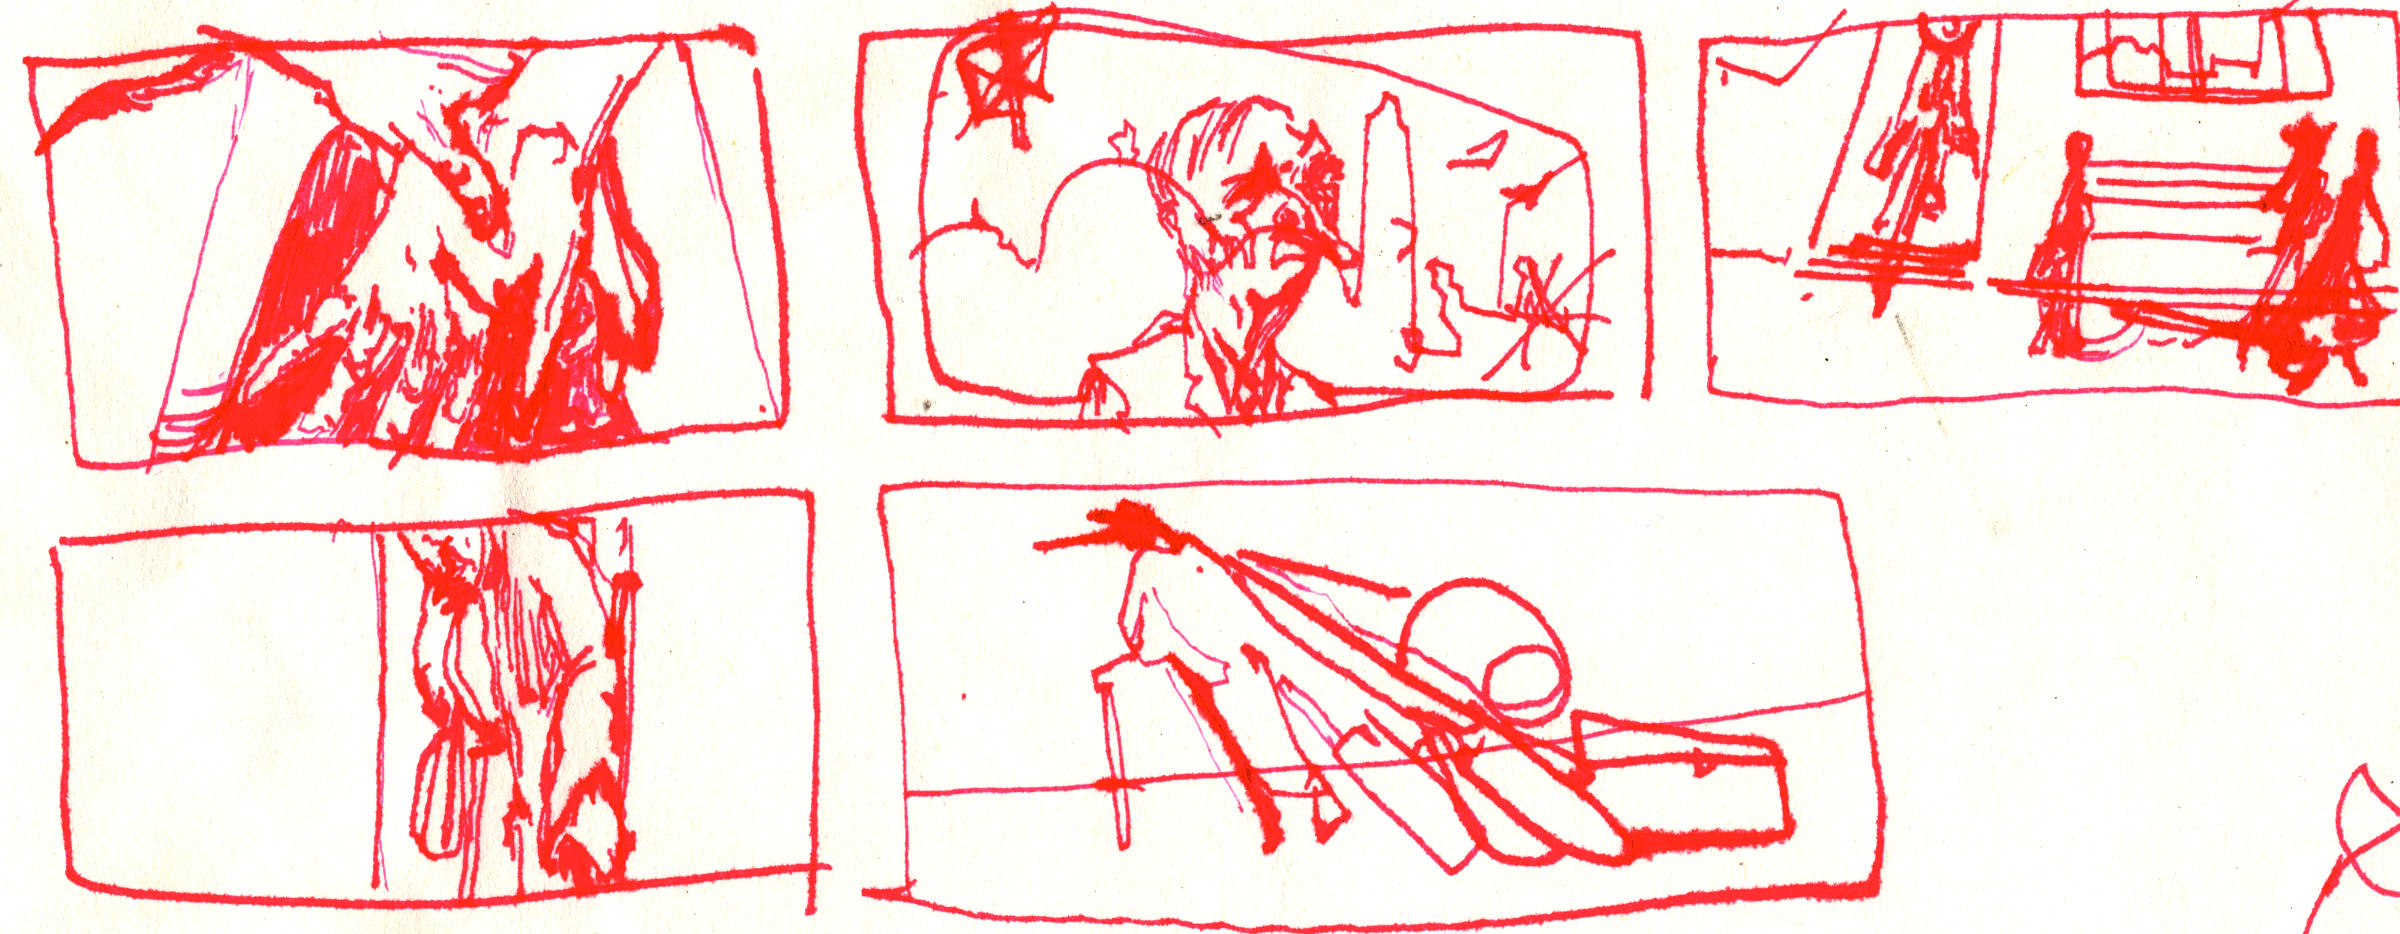 pinocchioVenicestoryboard.png